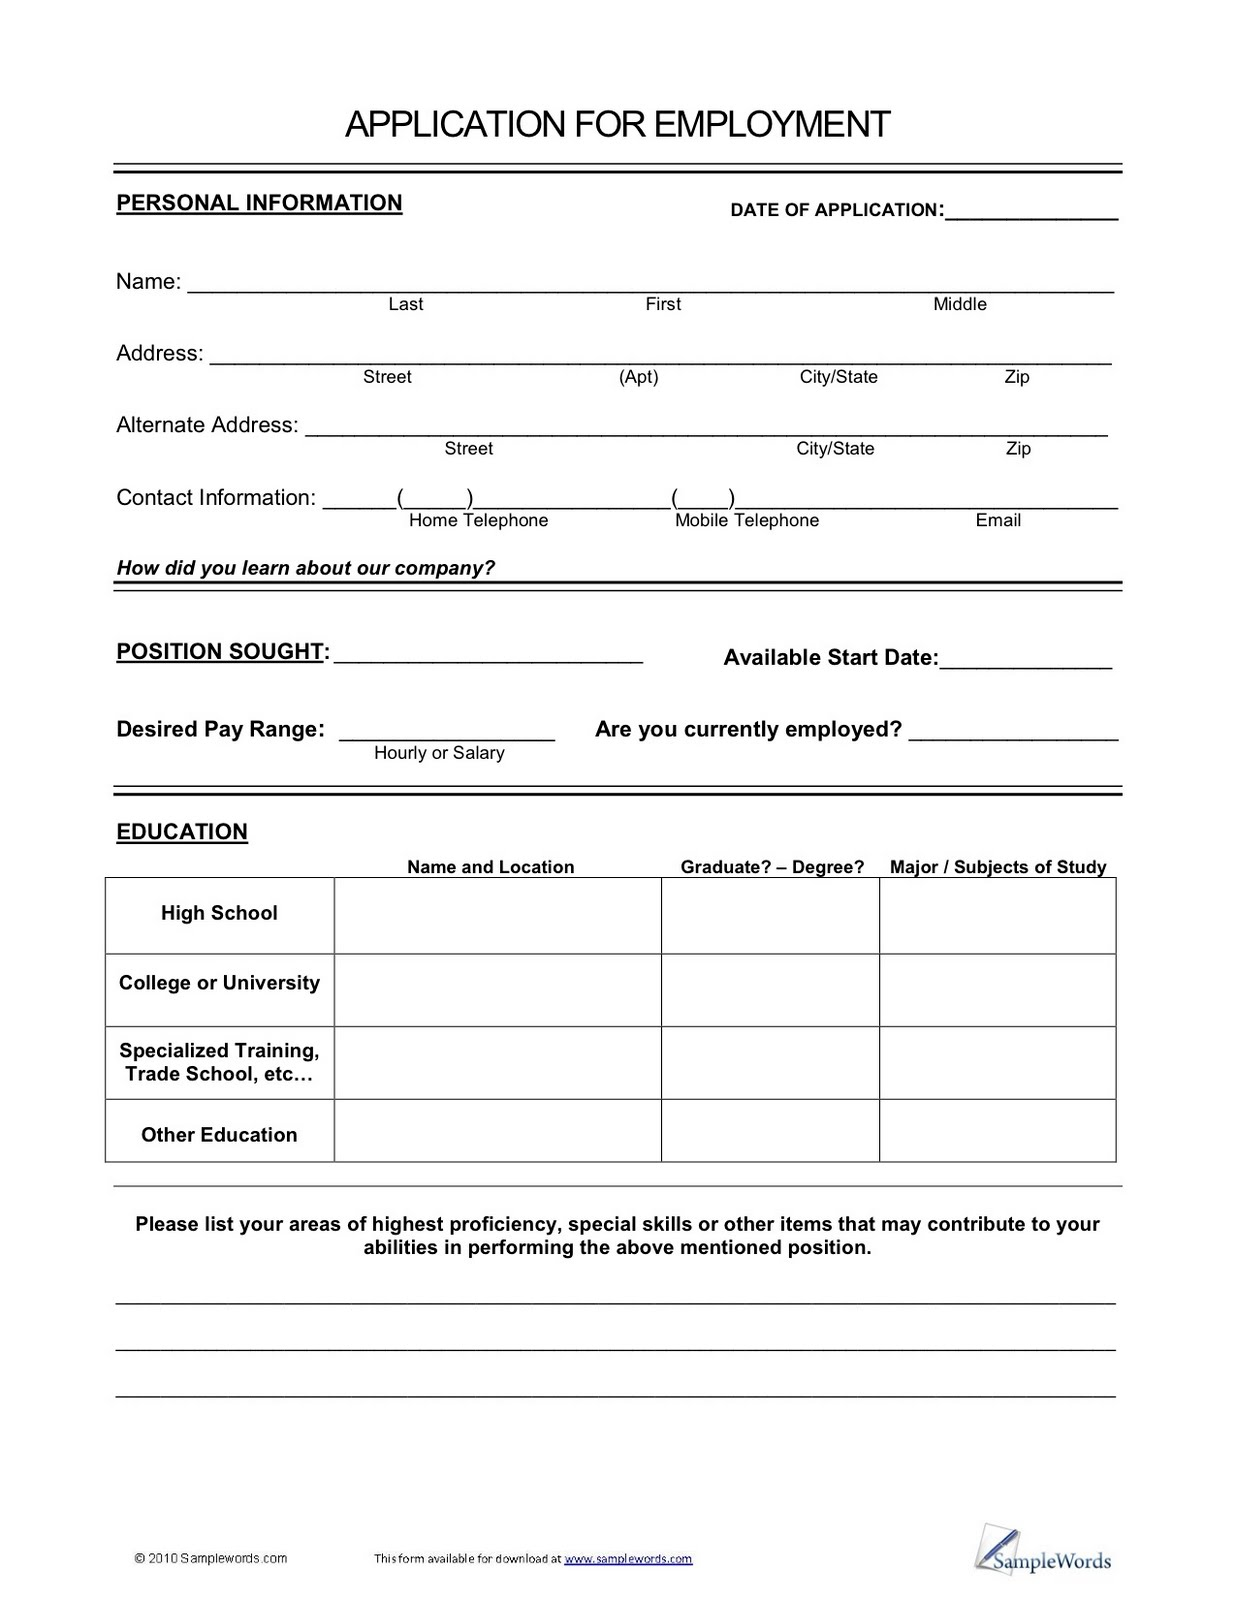 vons employment application form best online resume builder vons employment application form vons application jobs careers online employee application form pdf platformskateshop201103